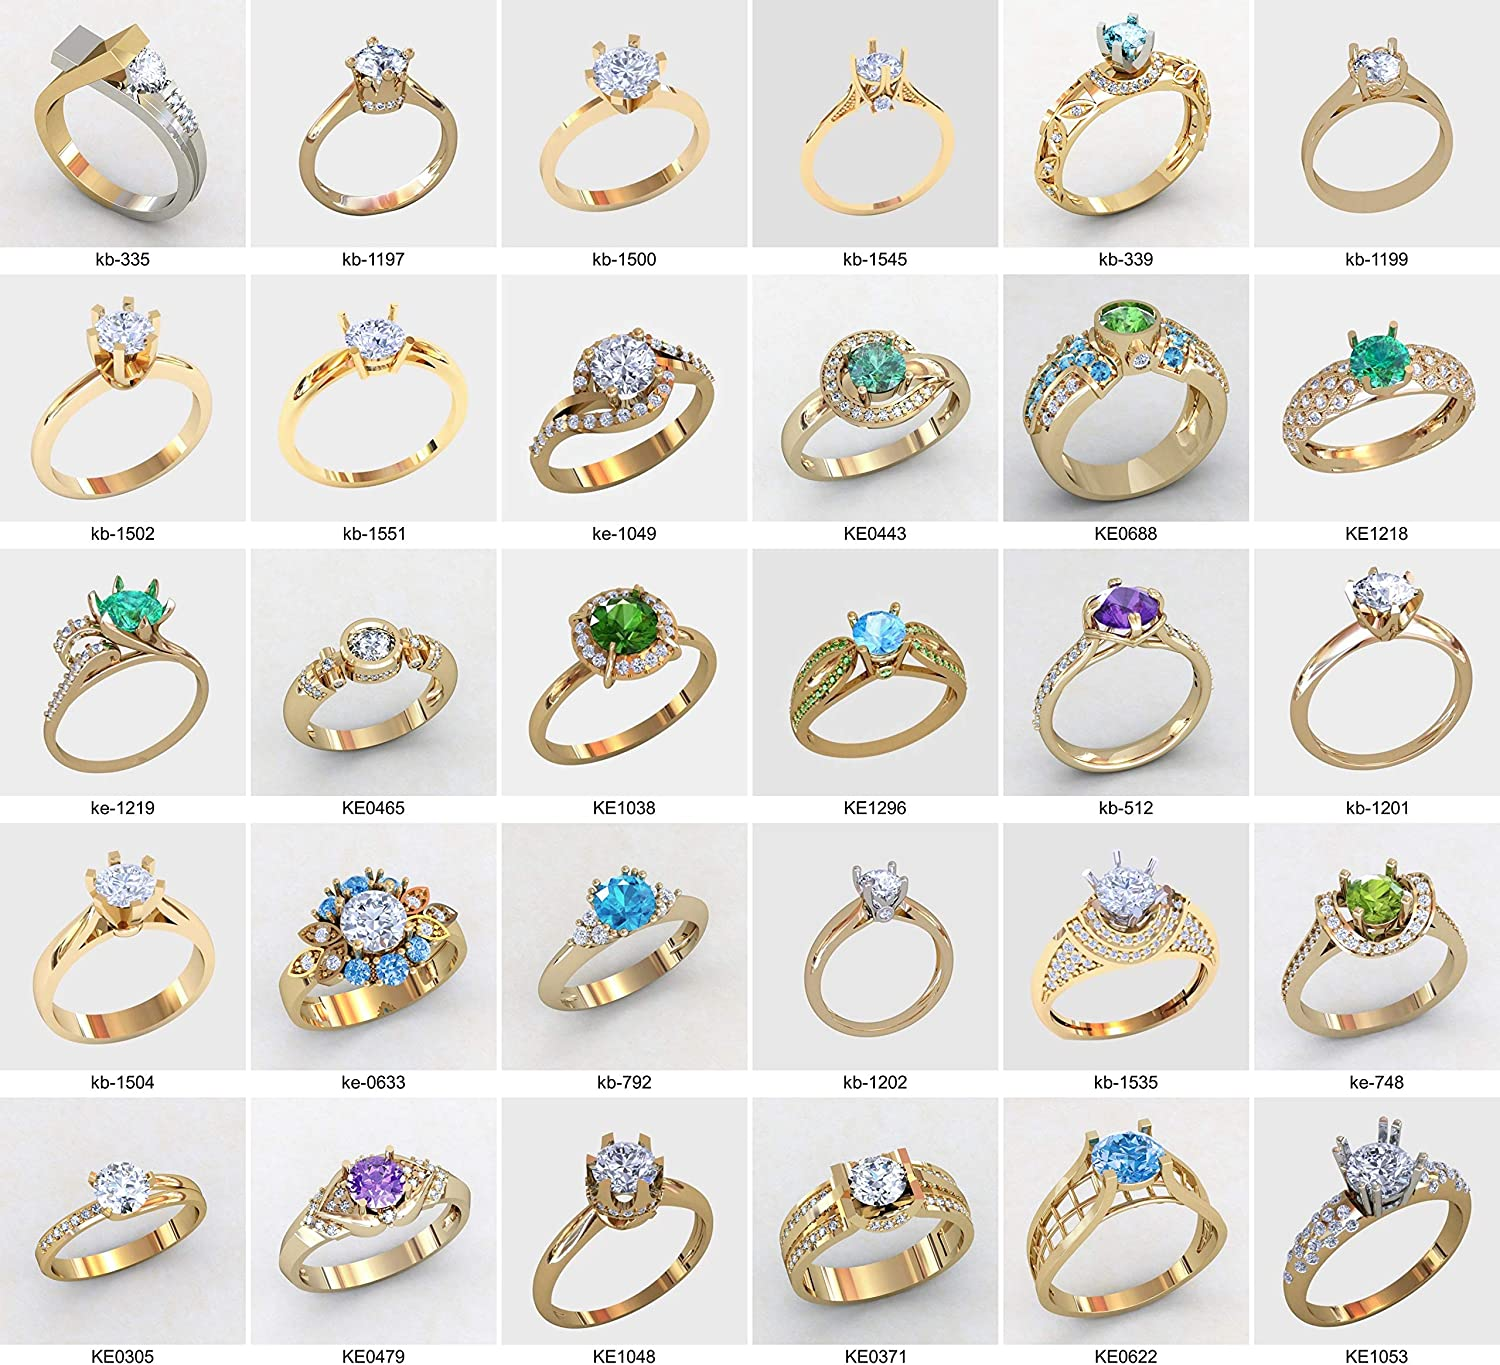 5 pcs Ladie/'s  ring Wax patterns for lost wax casting jewelry #a/_60704